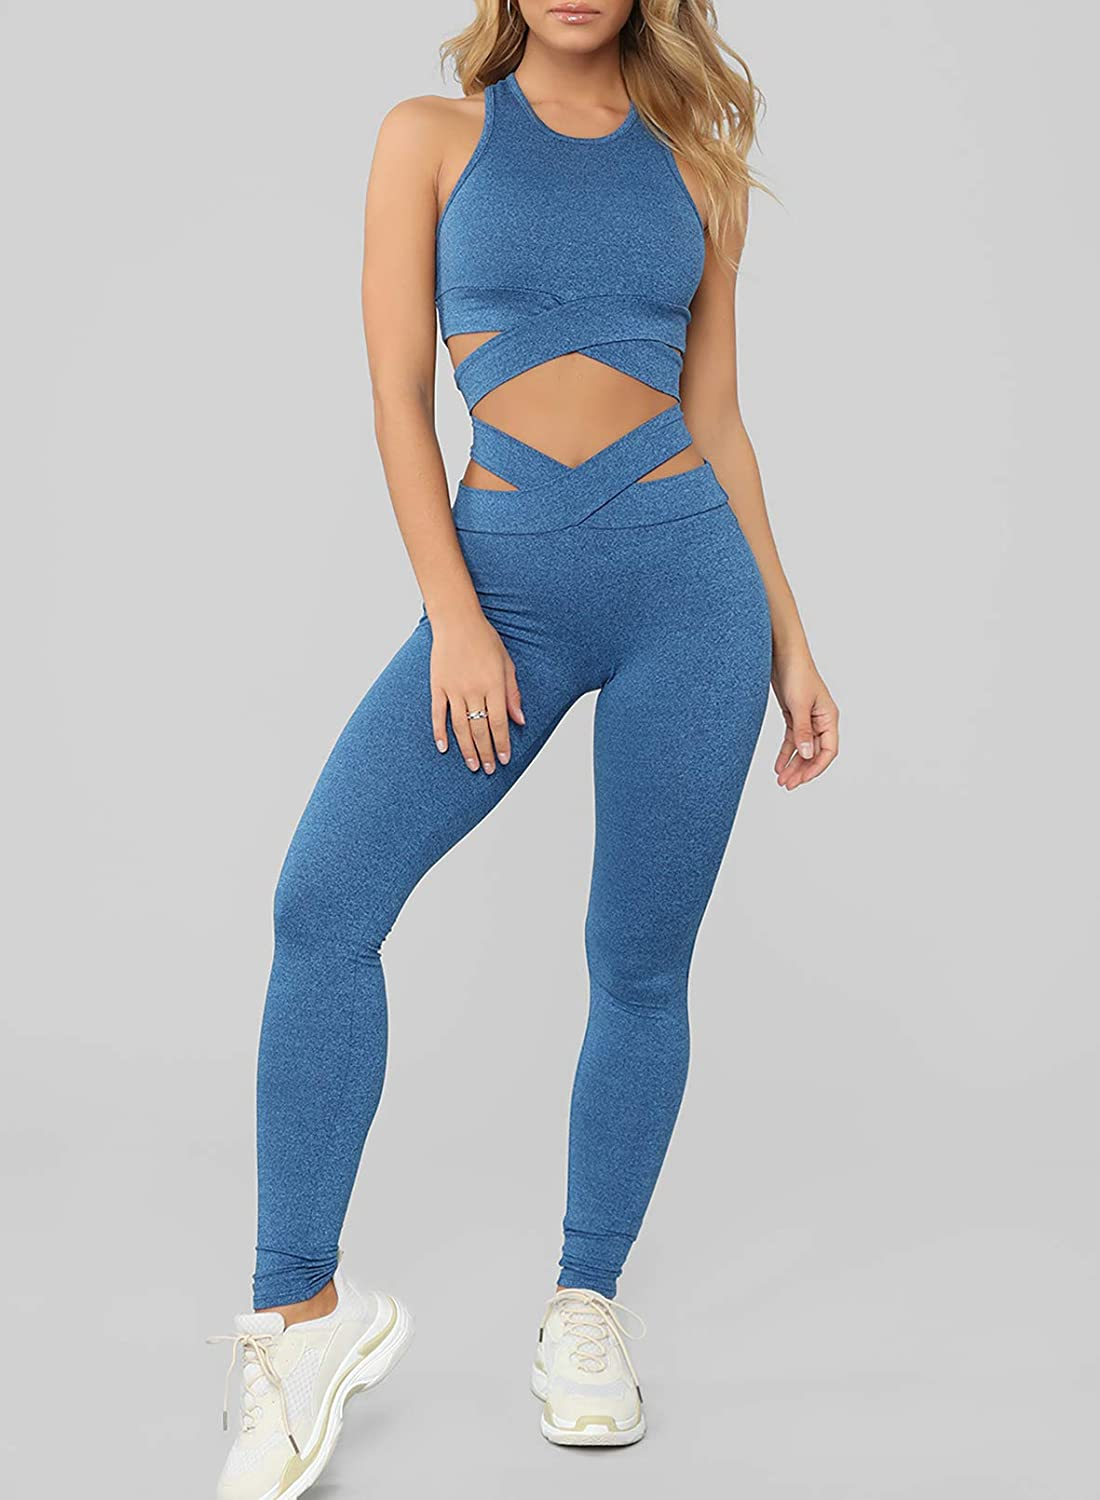 Two Piece Outfits For Women Sports Bras High Waisted Leggings Workout Clothes For Yoga Gym